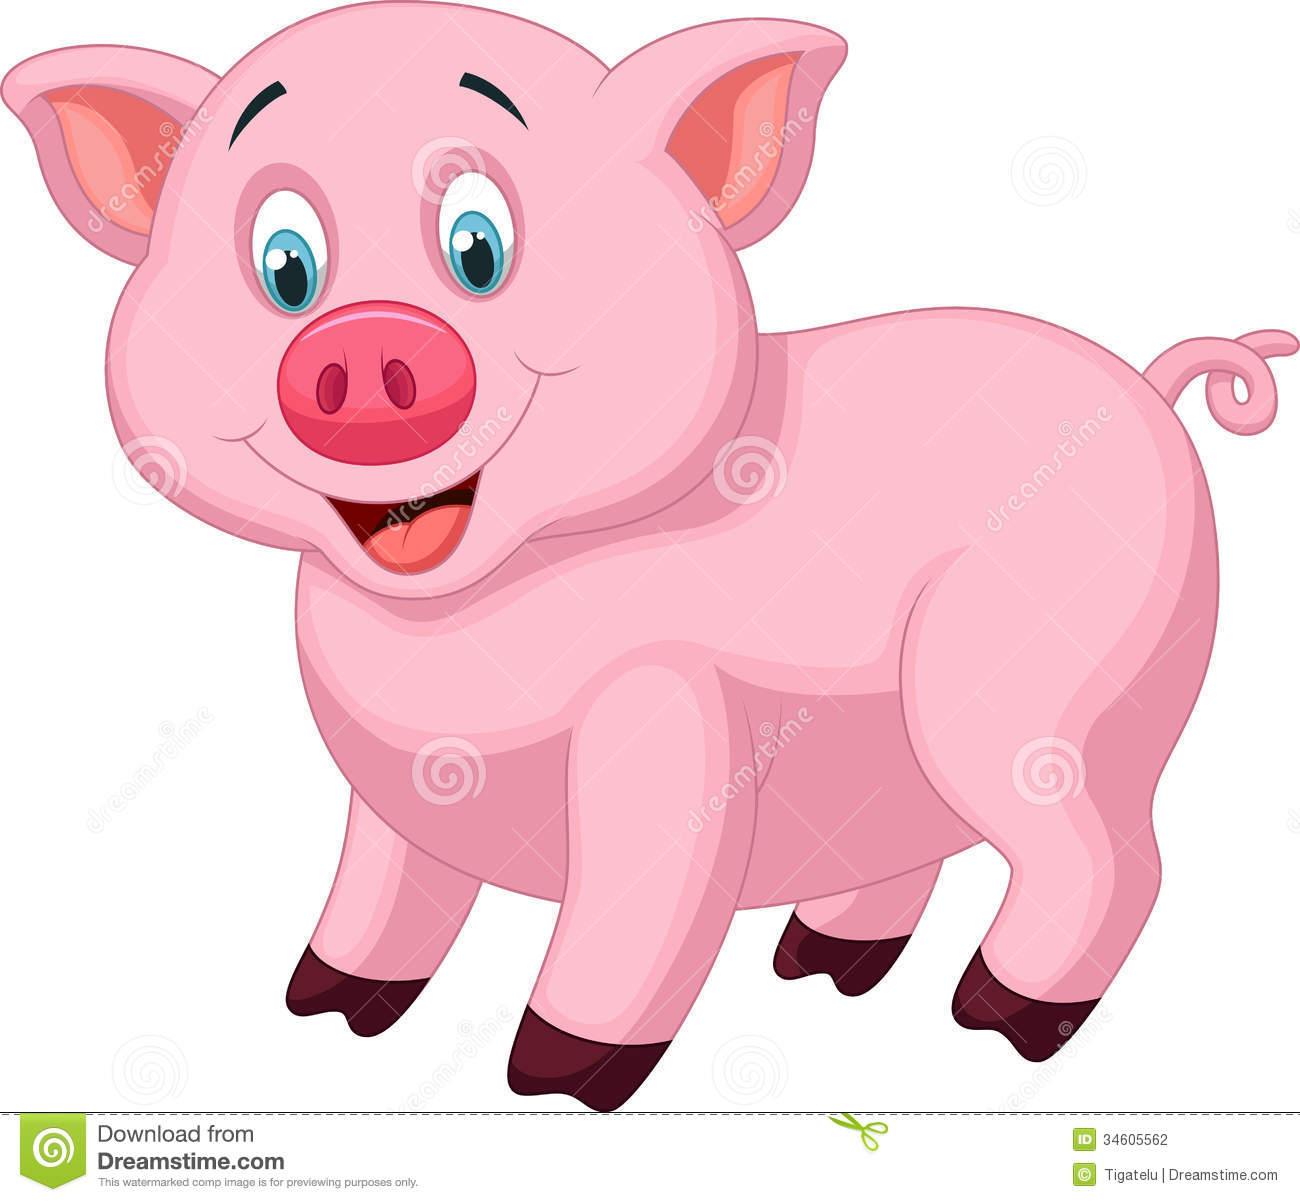 Cute Pig Cartoon Stock Photography - Image: 34605562